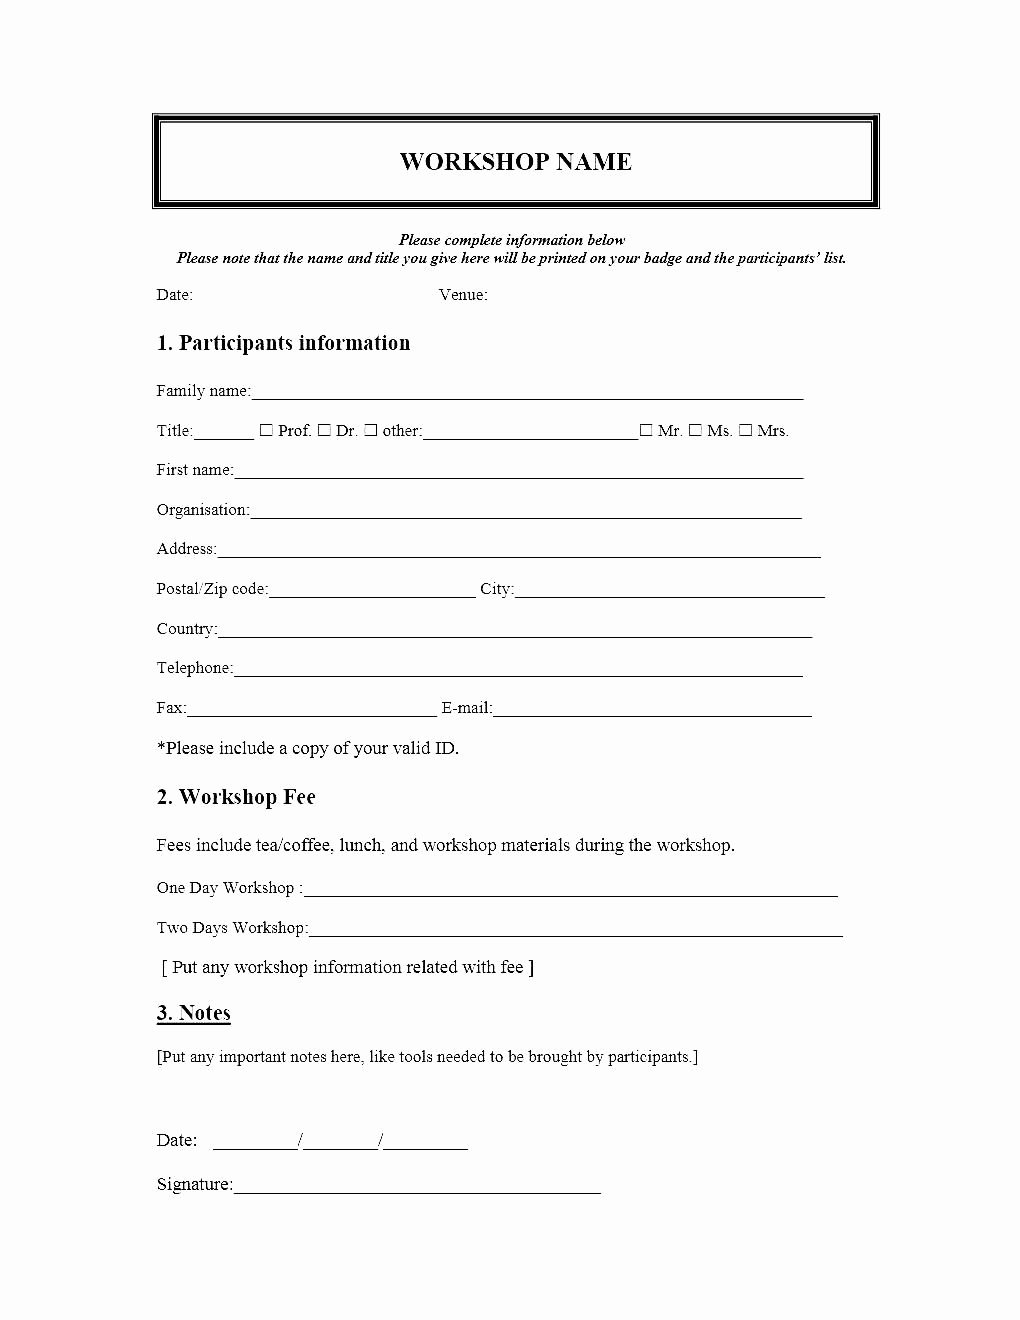 Event Vendor Application Template Awesome event Registration form Template Microsoft Word